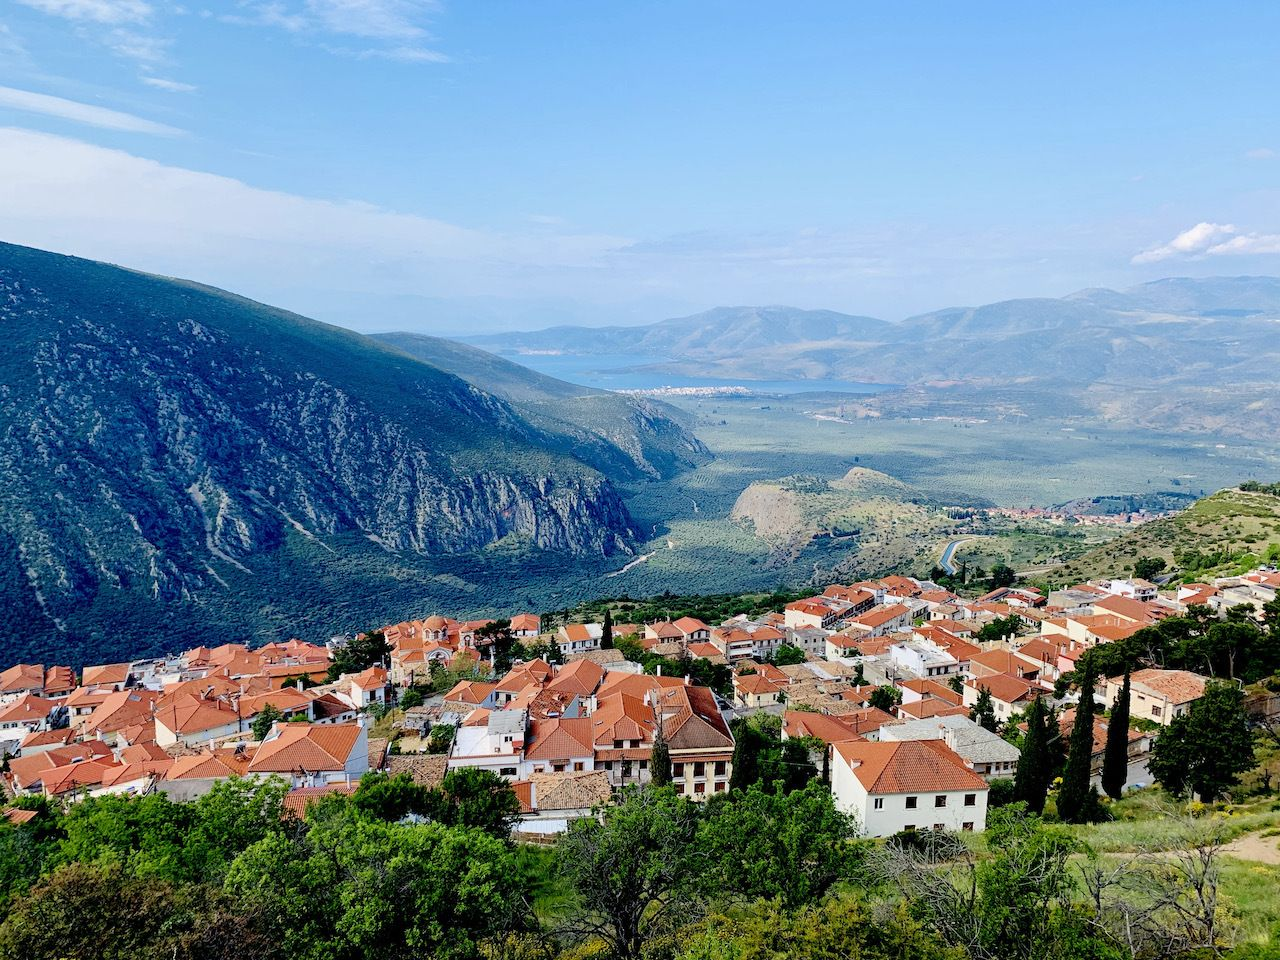 hiking-in-delphi-view-over-town-adriatic